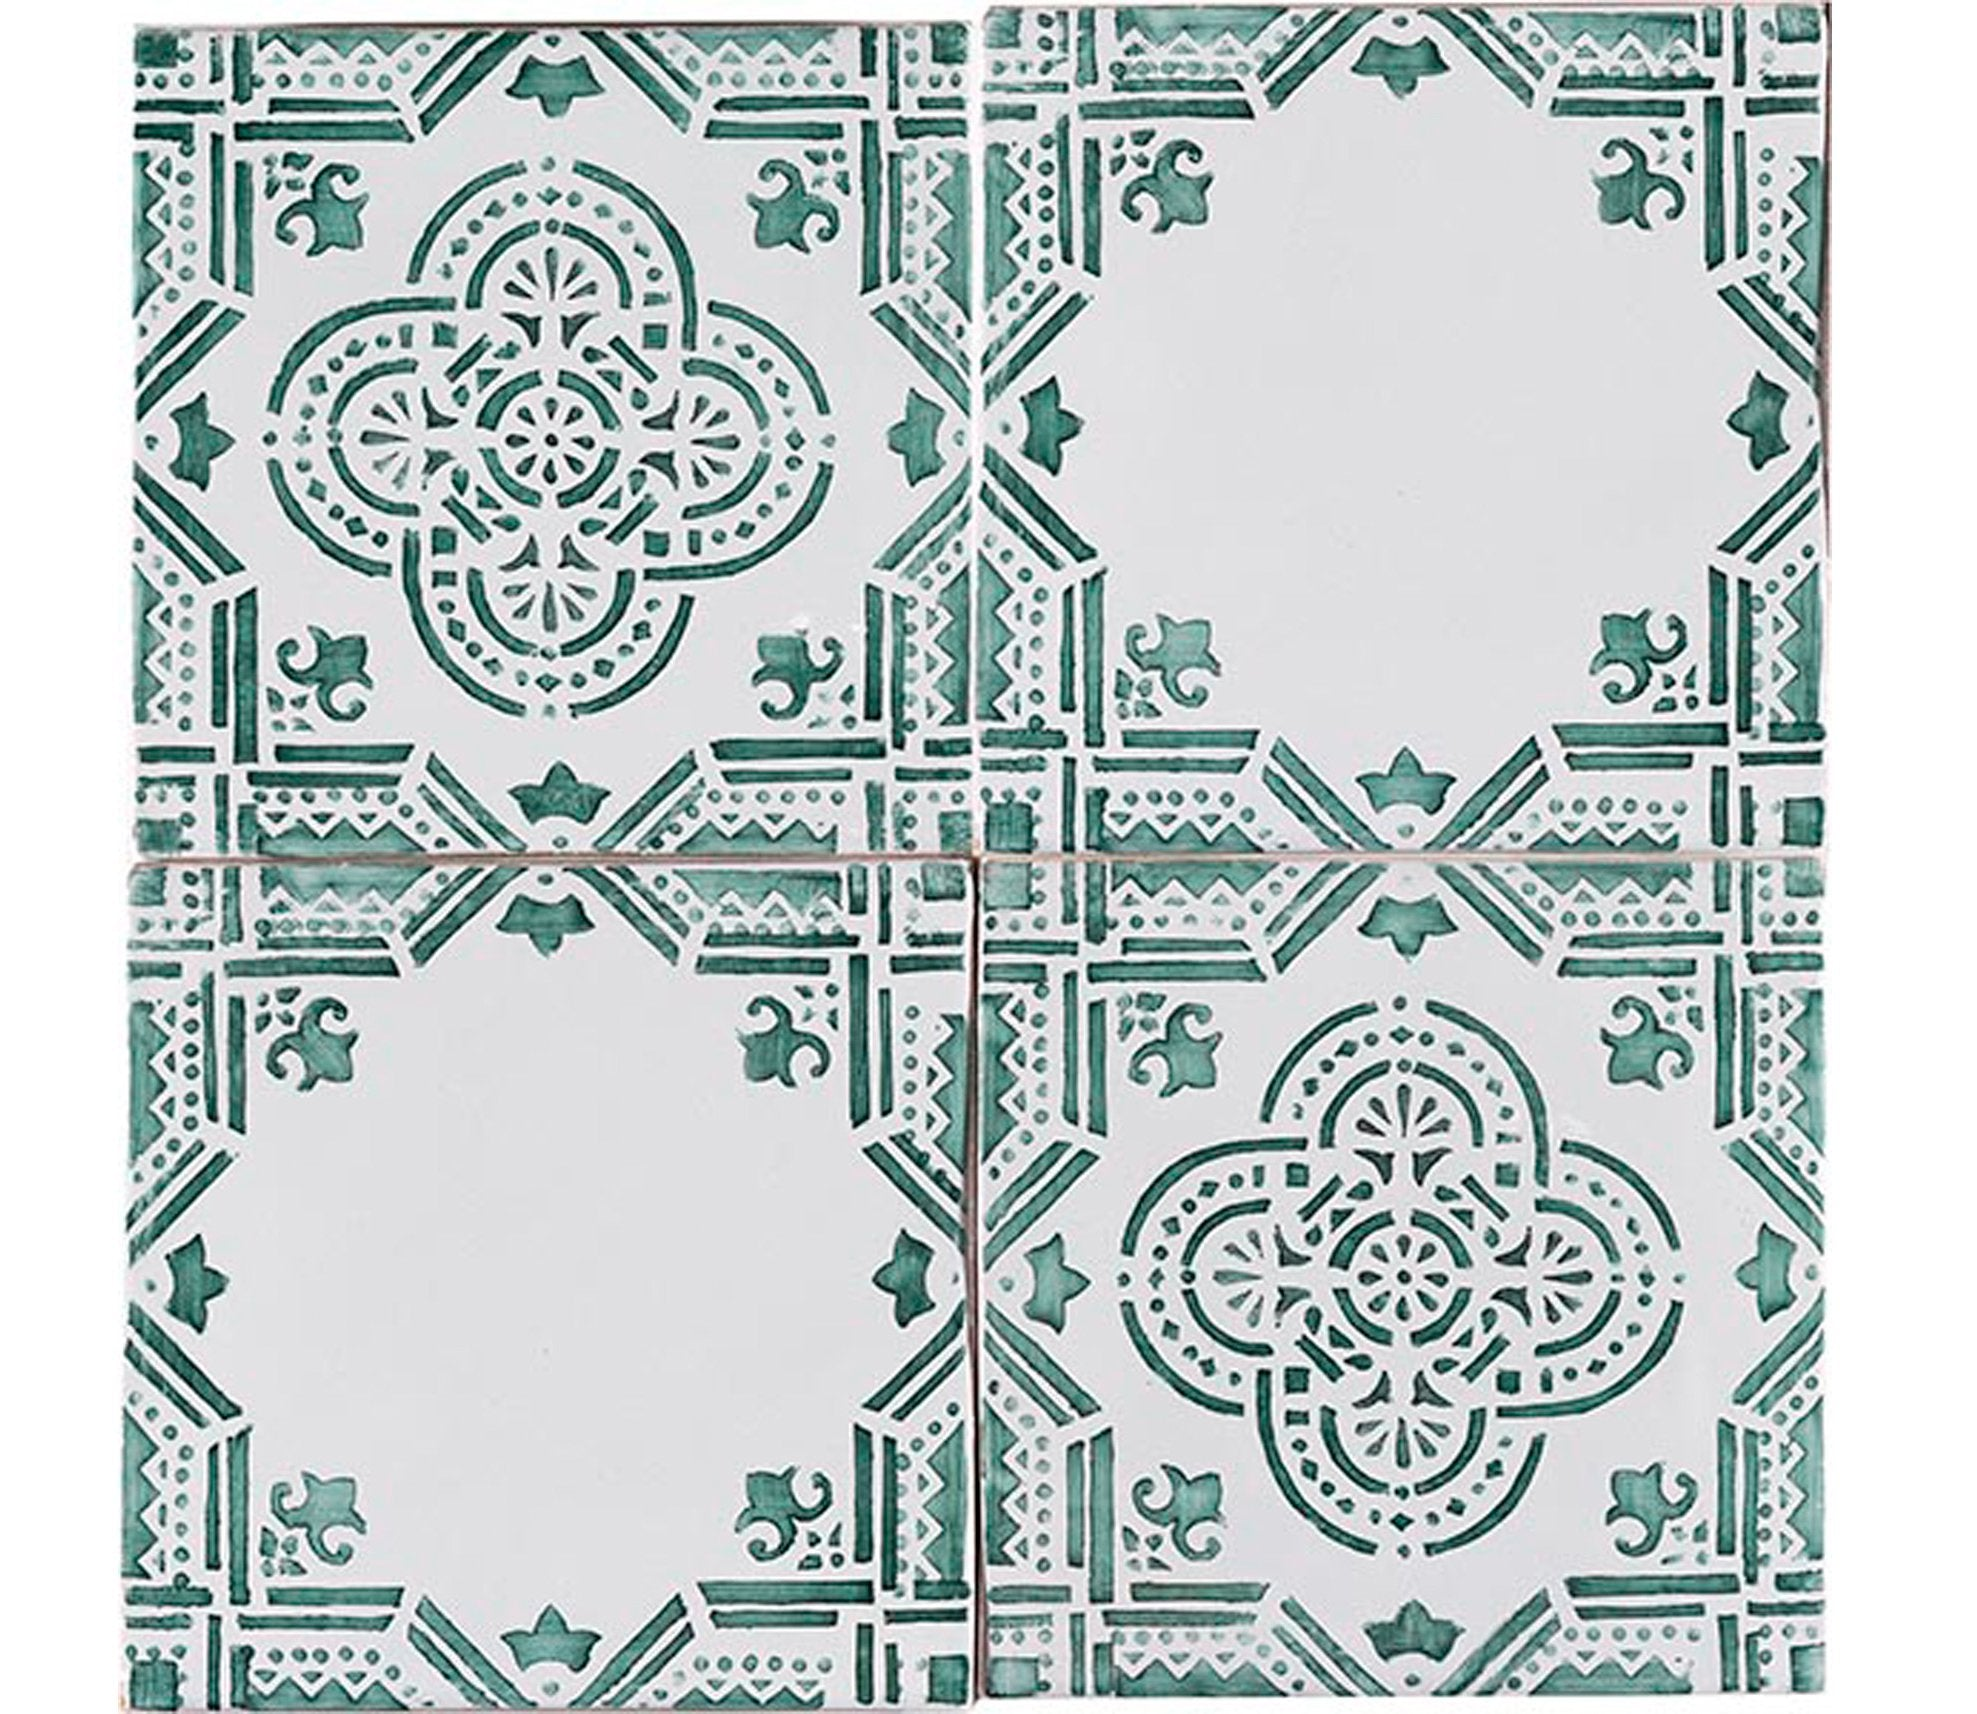 Series S Handpainted Tiles Product Image 27